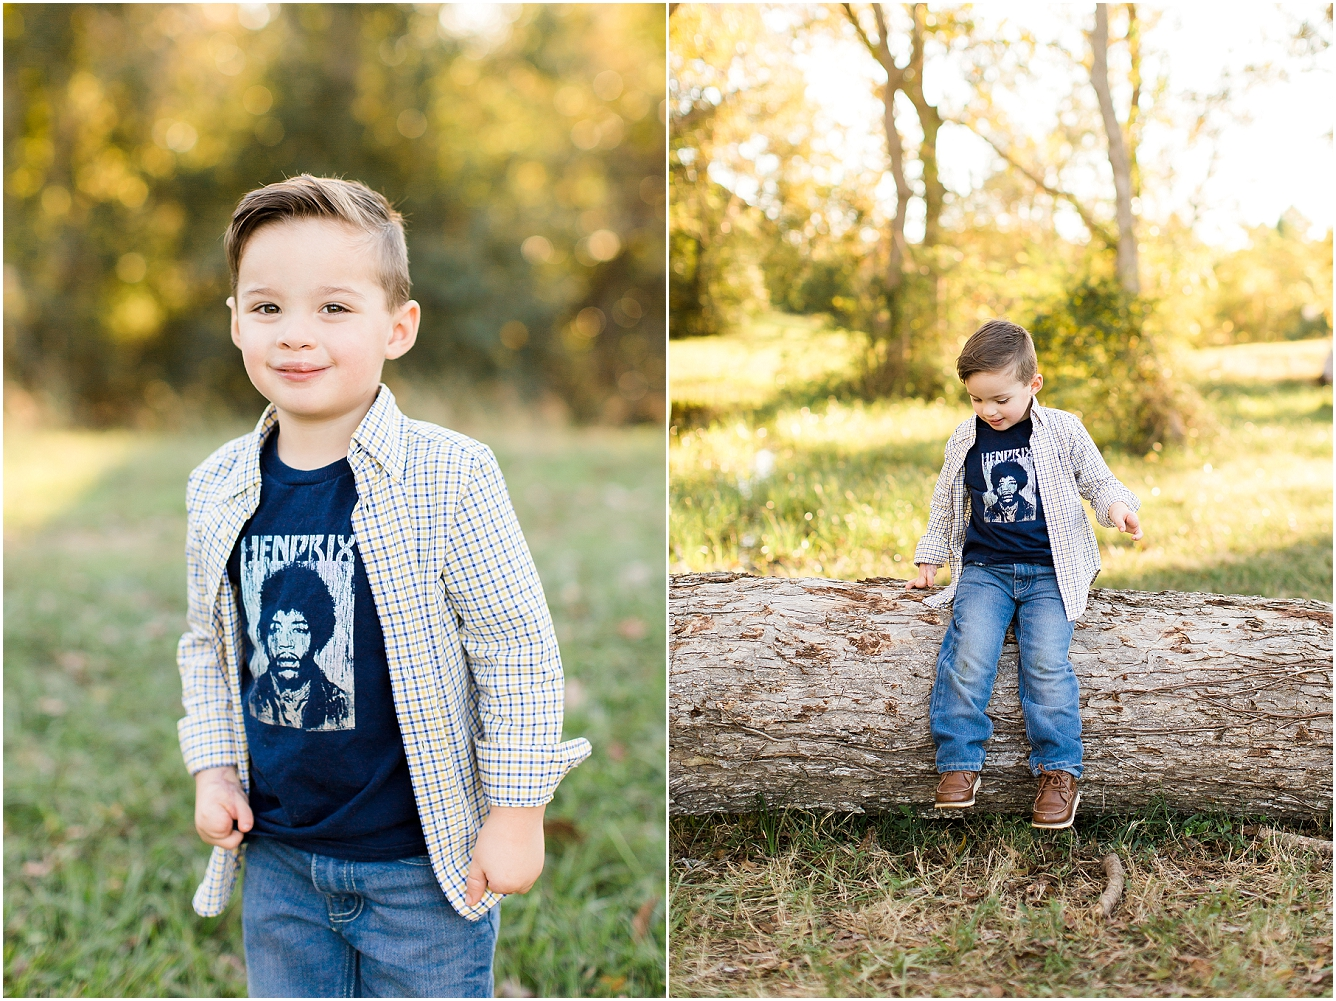 Outdoor Child Photography | Katy, TX Family Photography